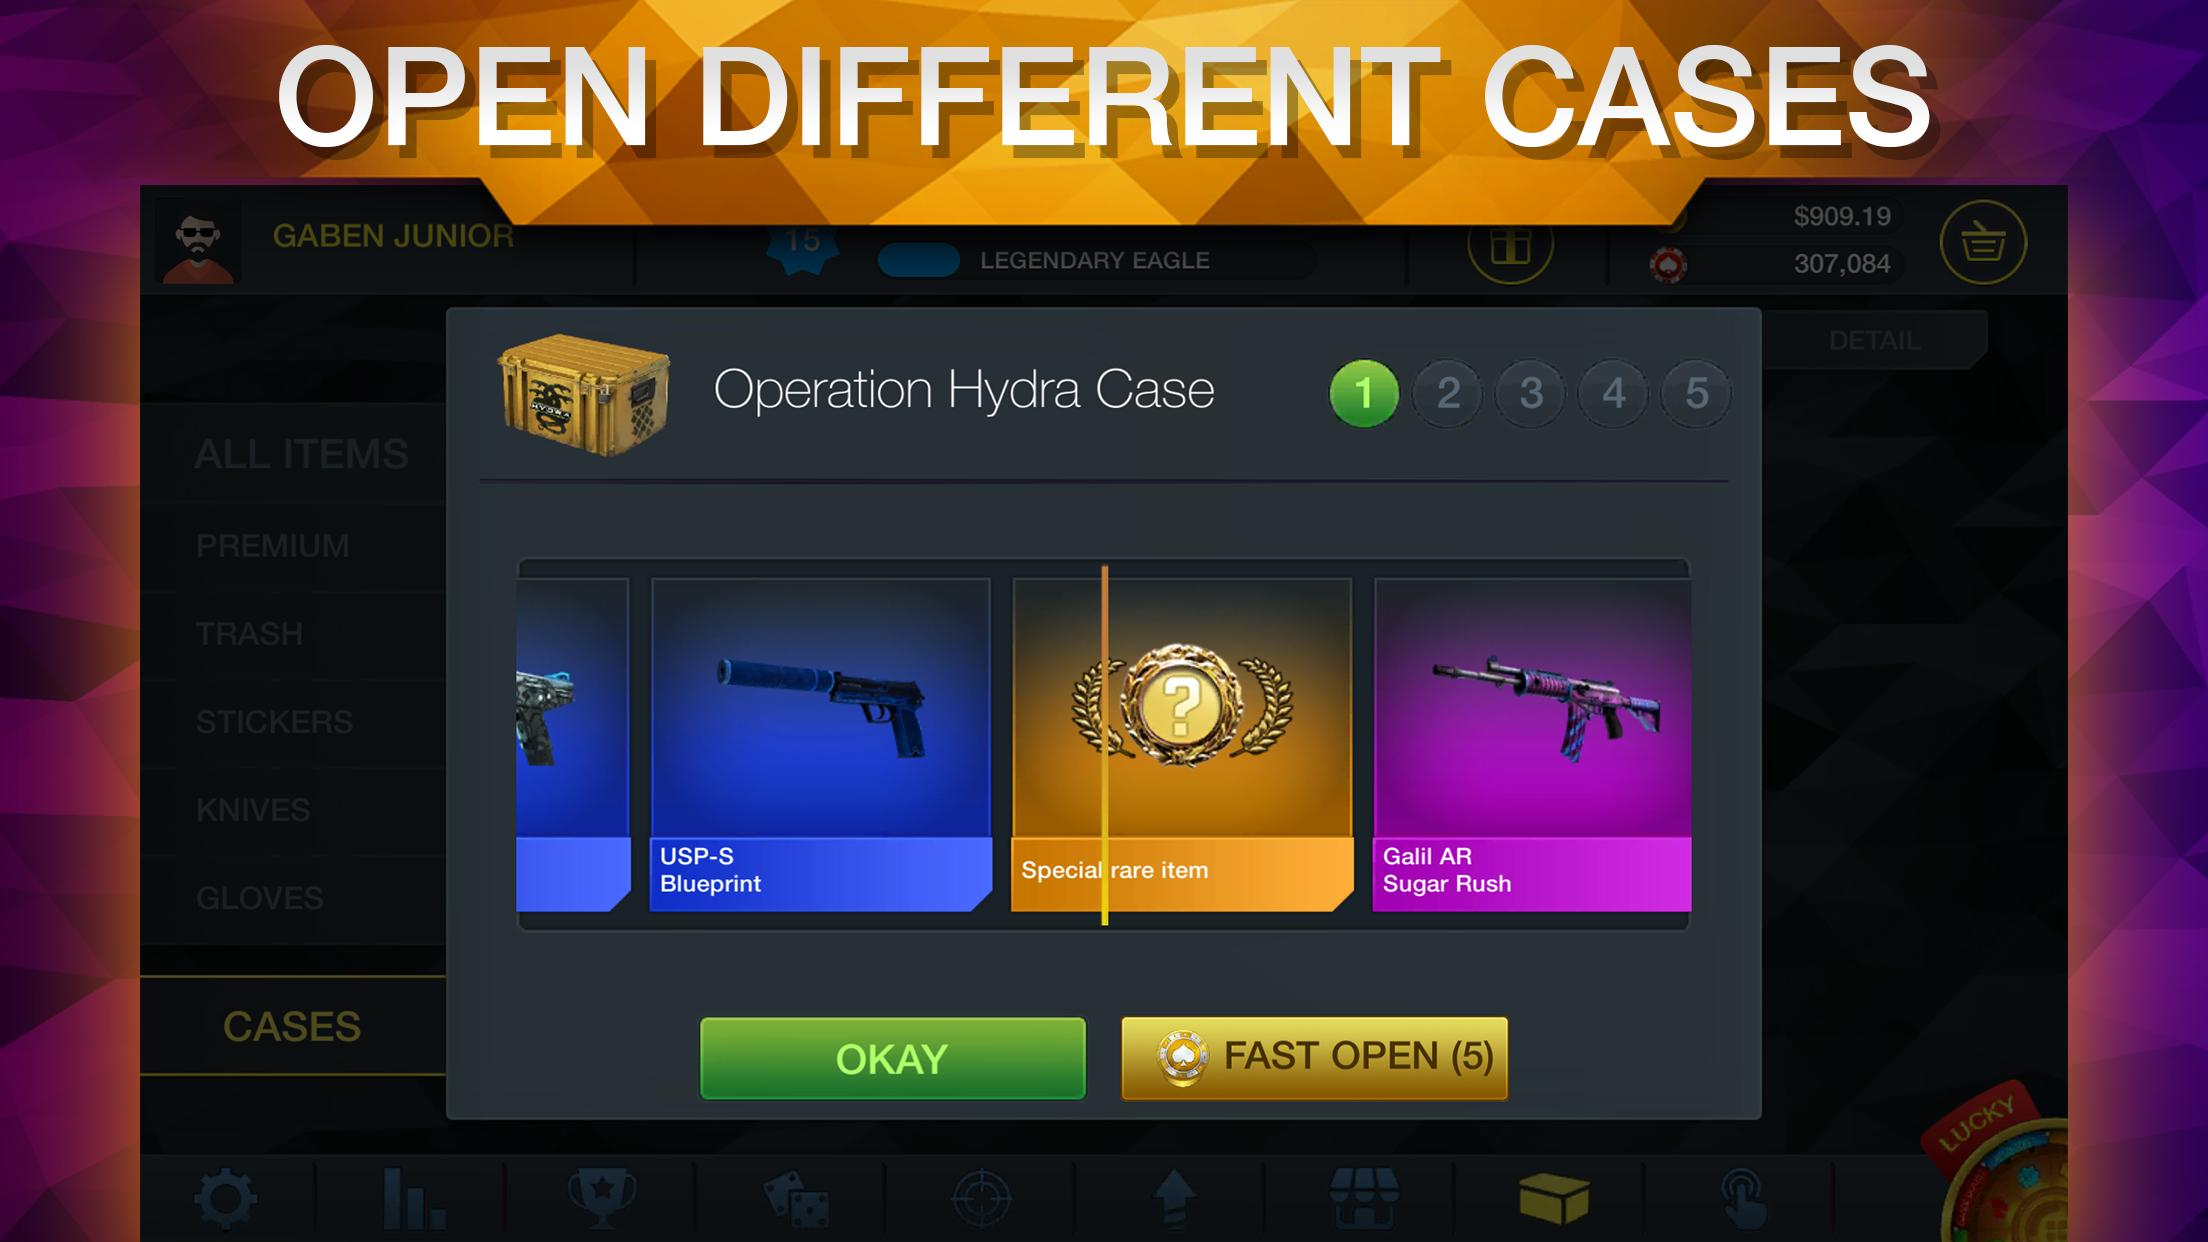 Case Chase - Case Simulator for CS:GO for Android - APK Download